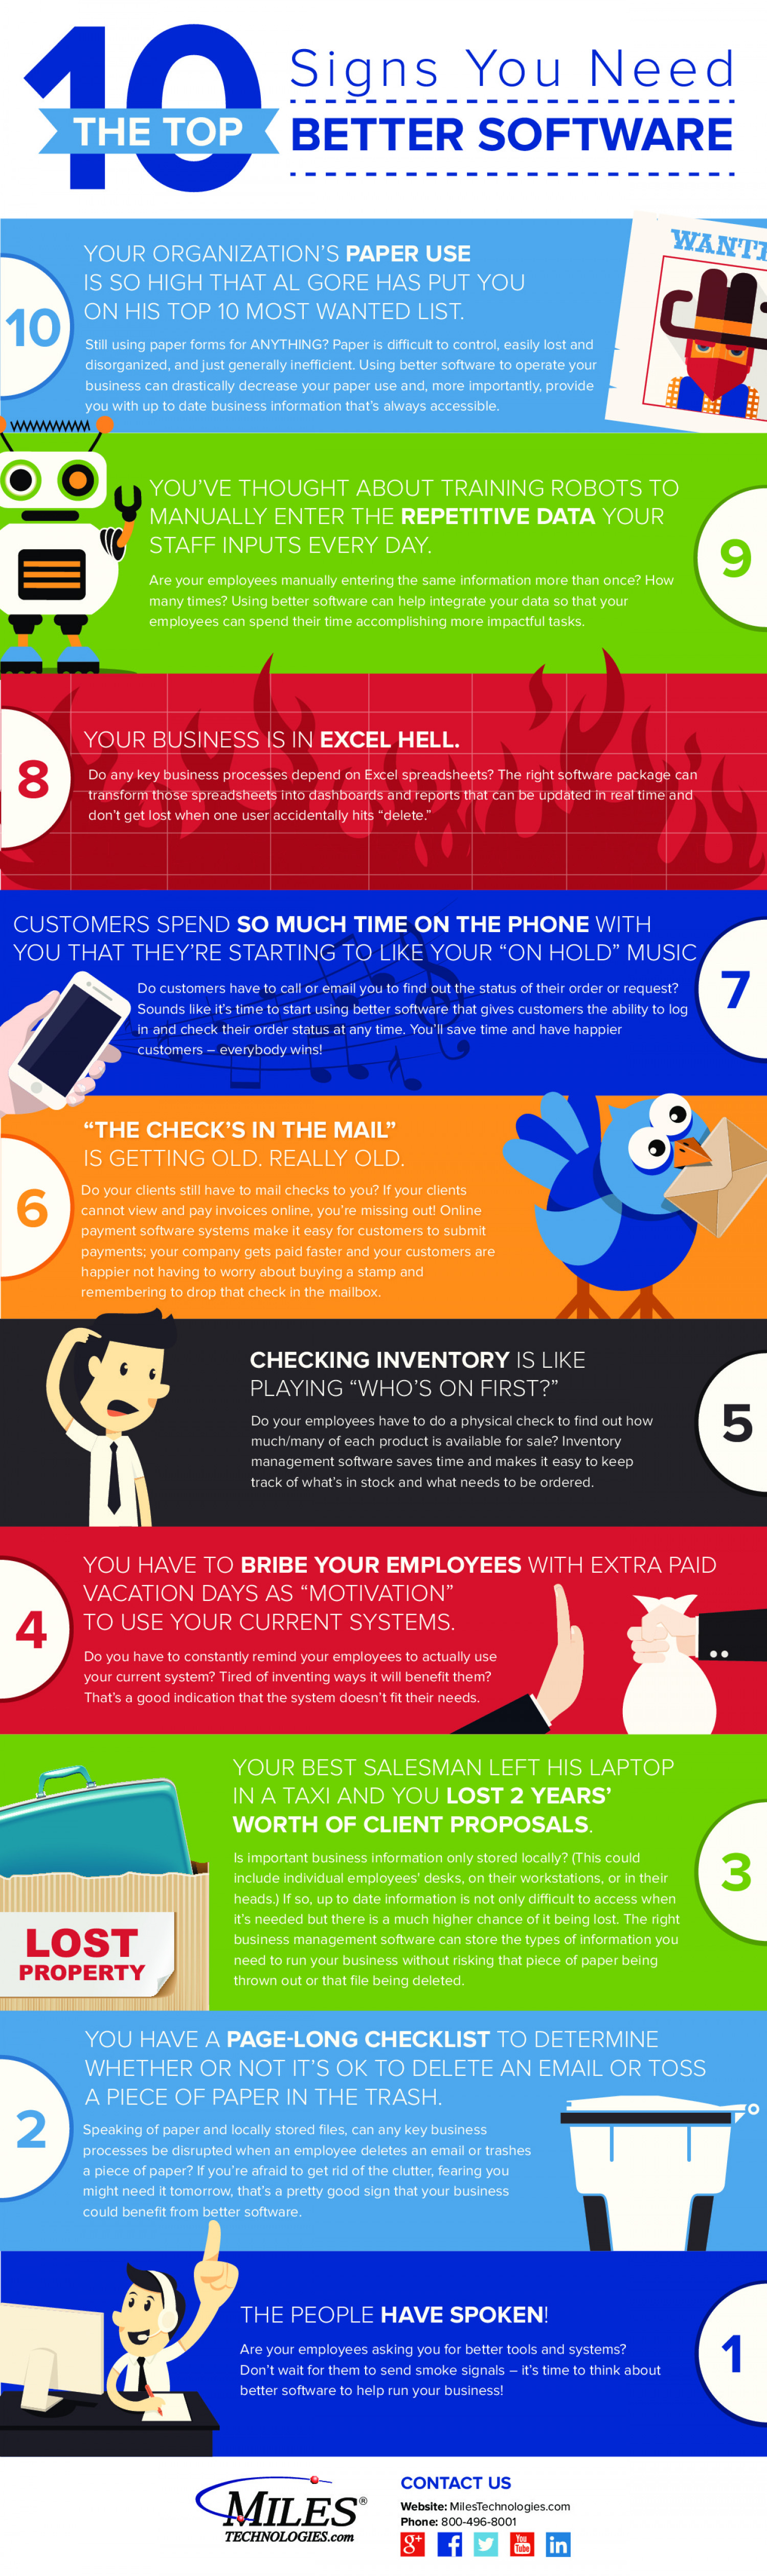 Top 10 Signs You Need Better Software Infographic